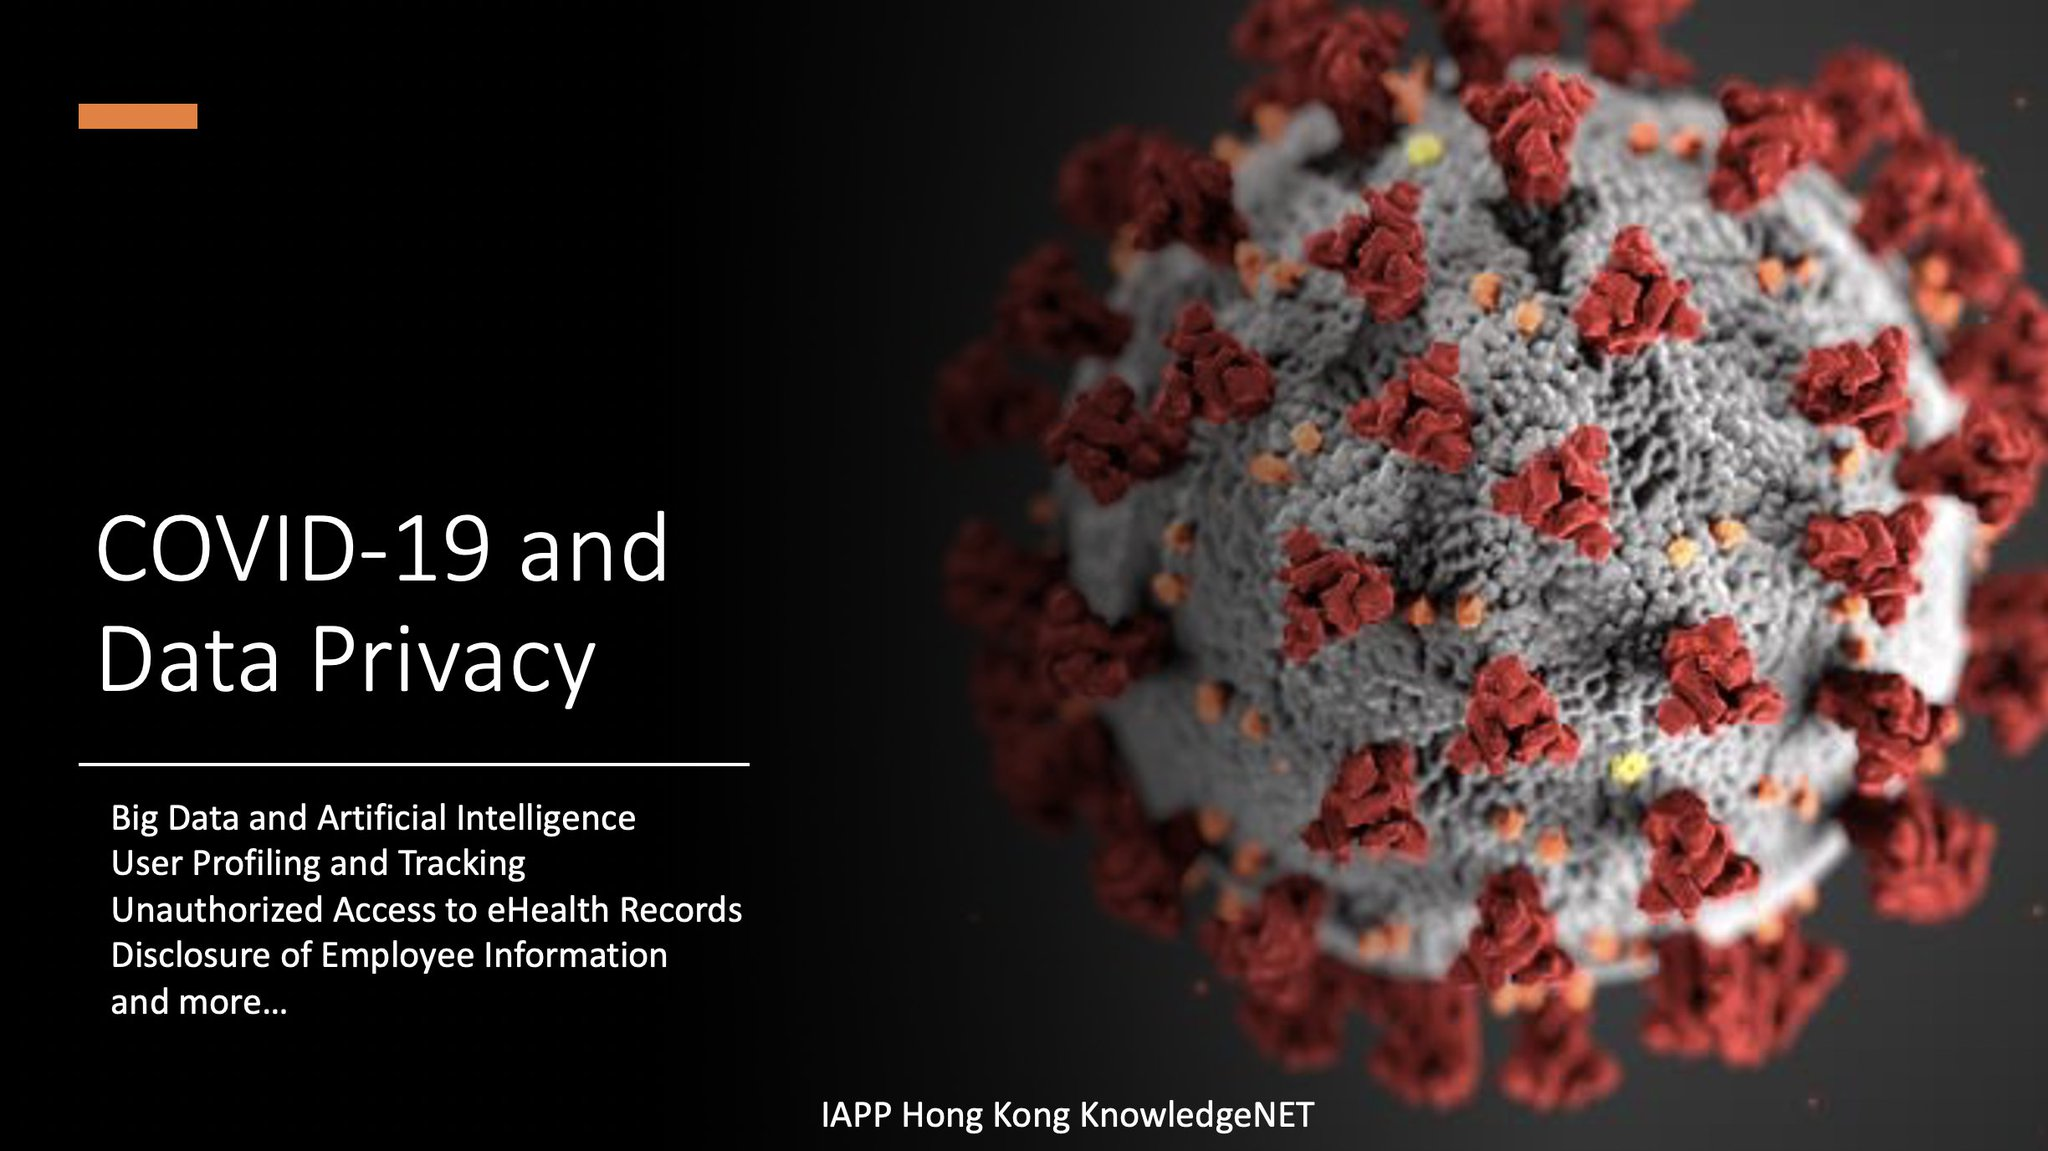 Just hosted our very first IAPP @PrivacyPros HK KnowledgeNET in a Virtual Meet-up. HK Privacy Commissioner Wong as guest speaker and we discussed #COVID2019 #privacy #cybersecurity #WFH #databreach and more! Join us next time! Stay Safe!  @hkbaptistu @cryptocom https://t.co/pyywCOB0kY